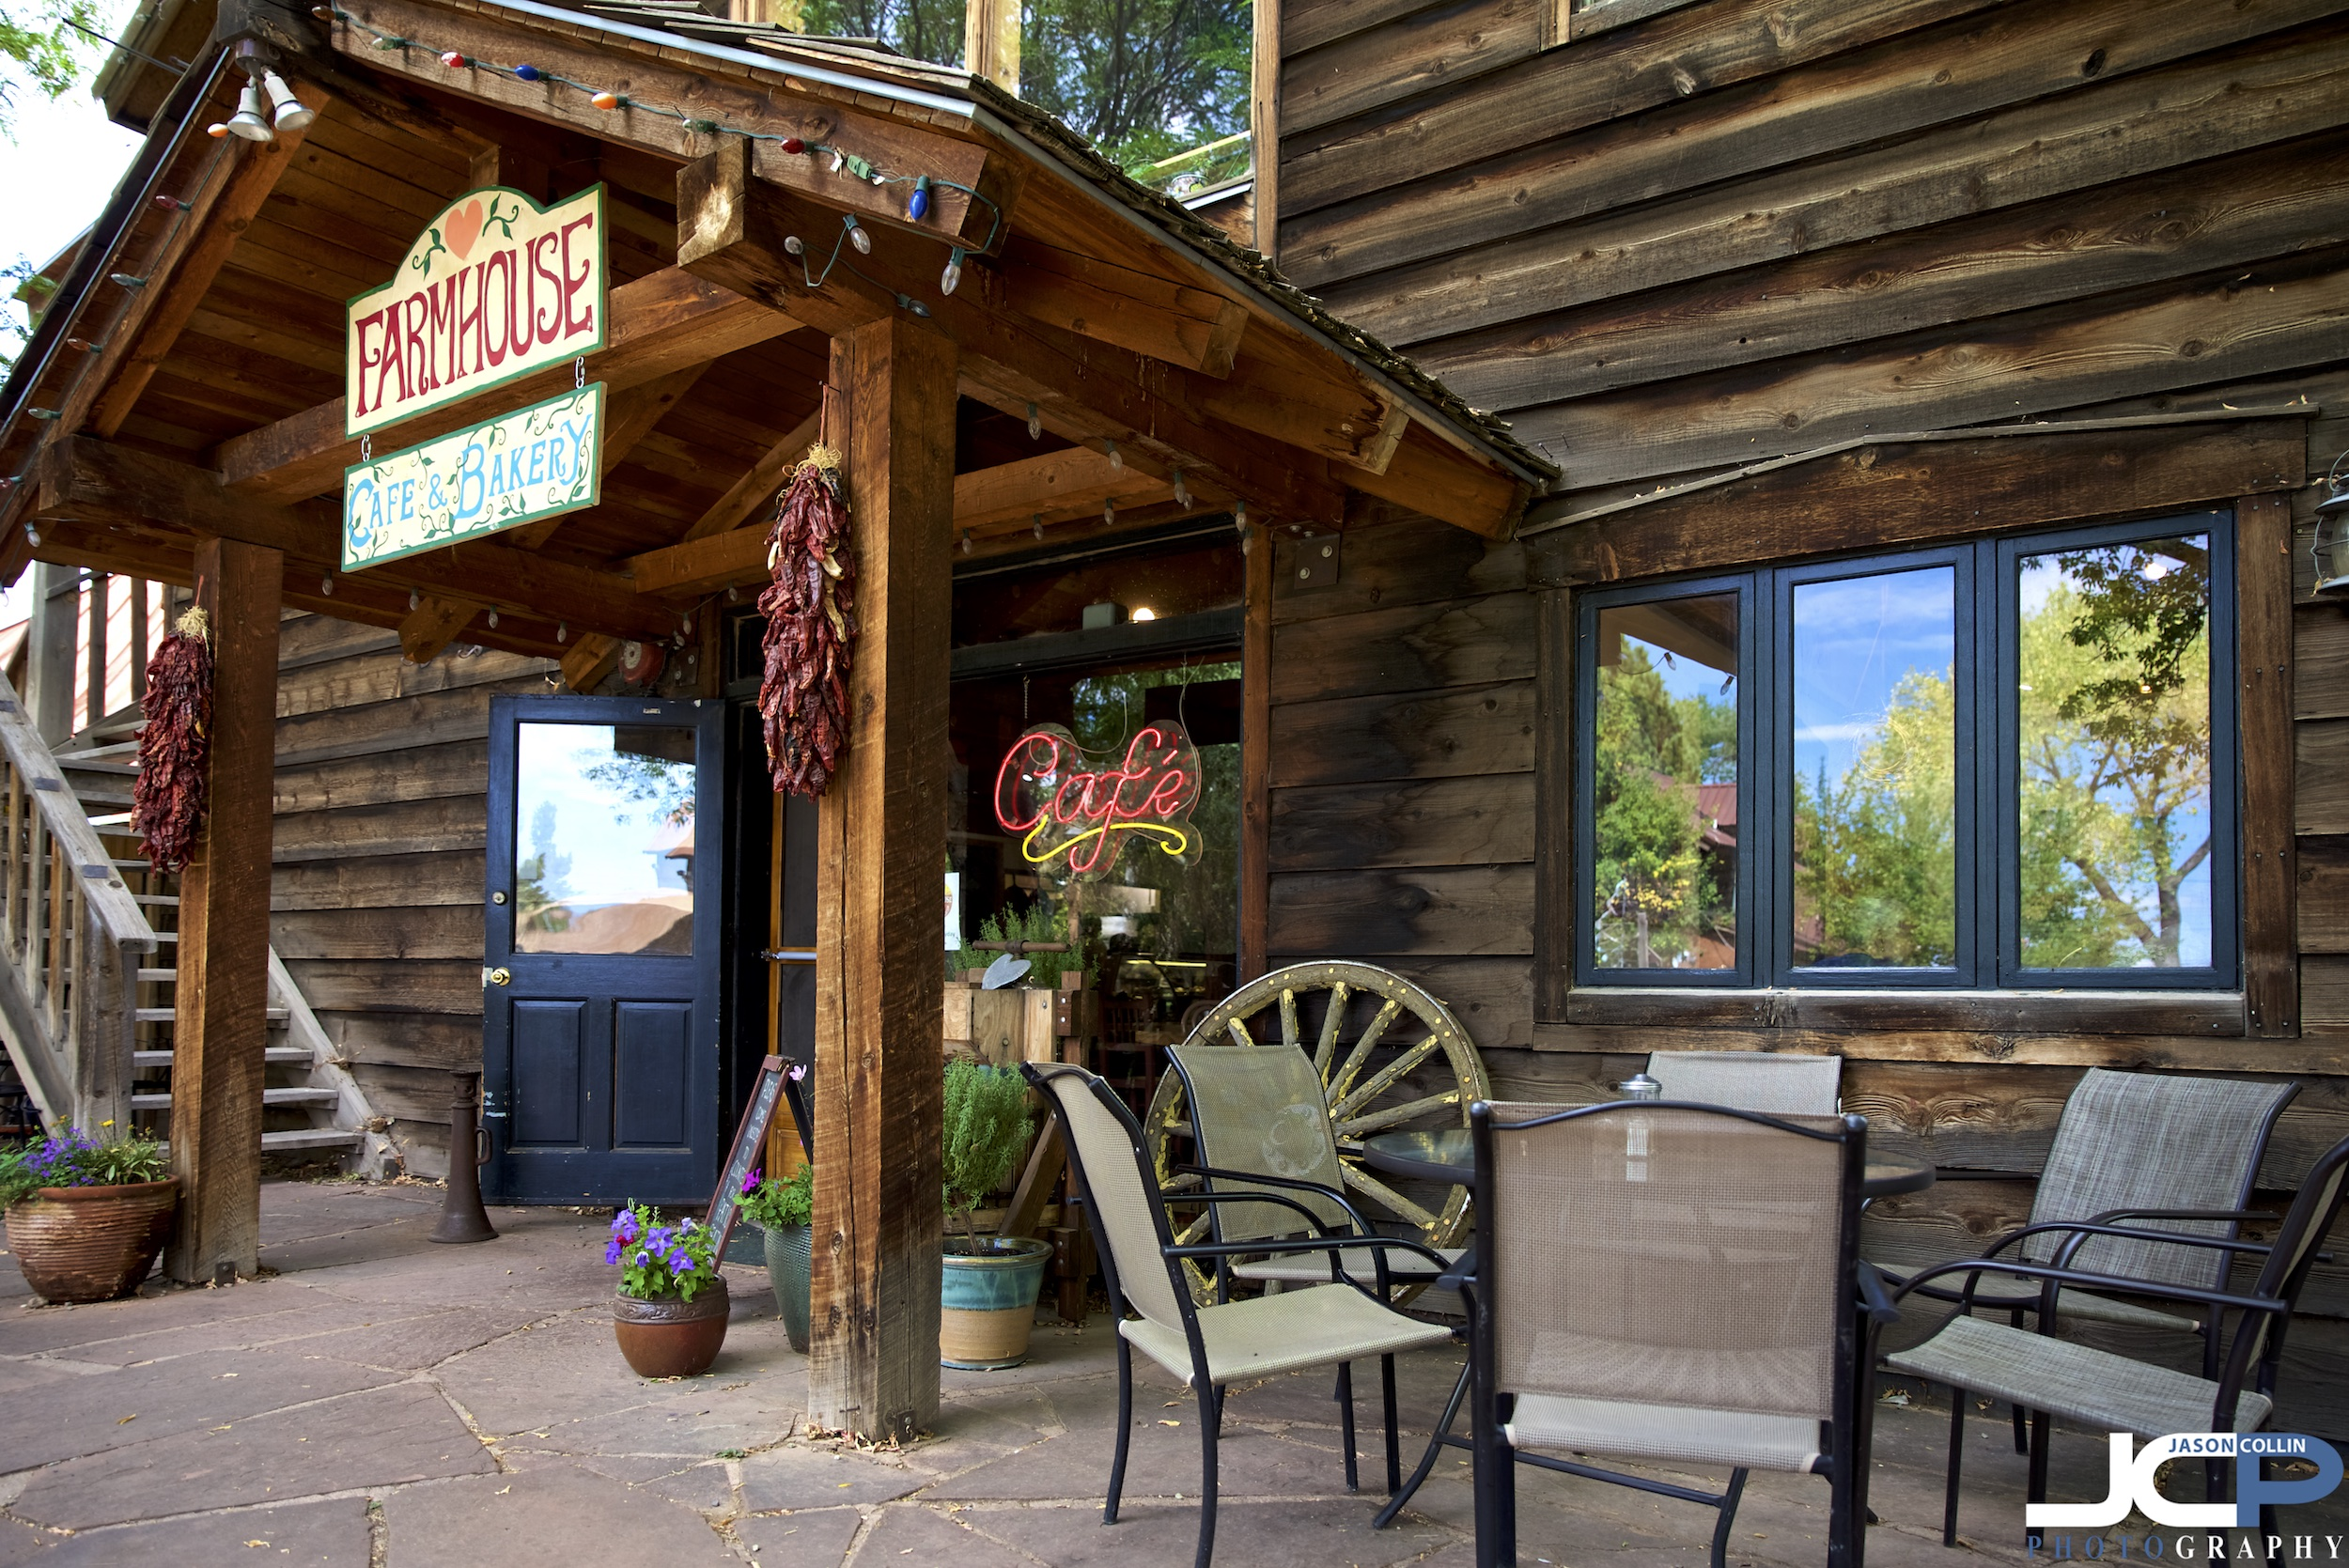 Entrance to the picturesque Farmhouse Cafe in Taos, New Mexico